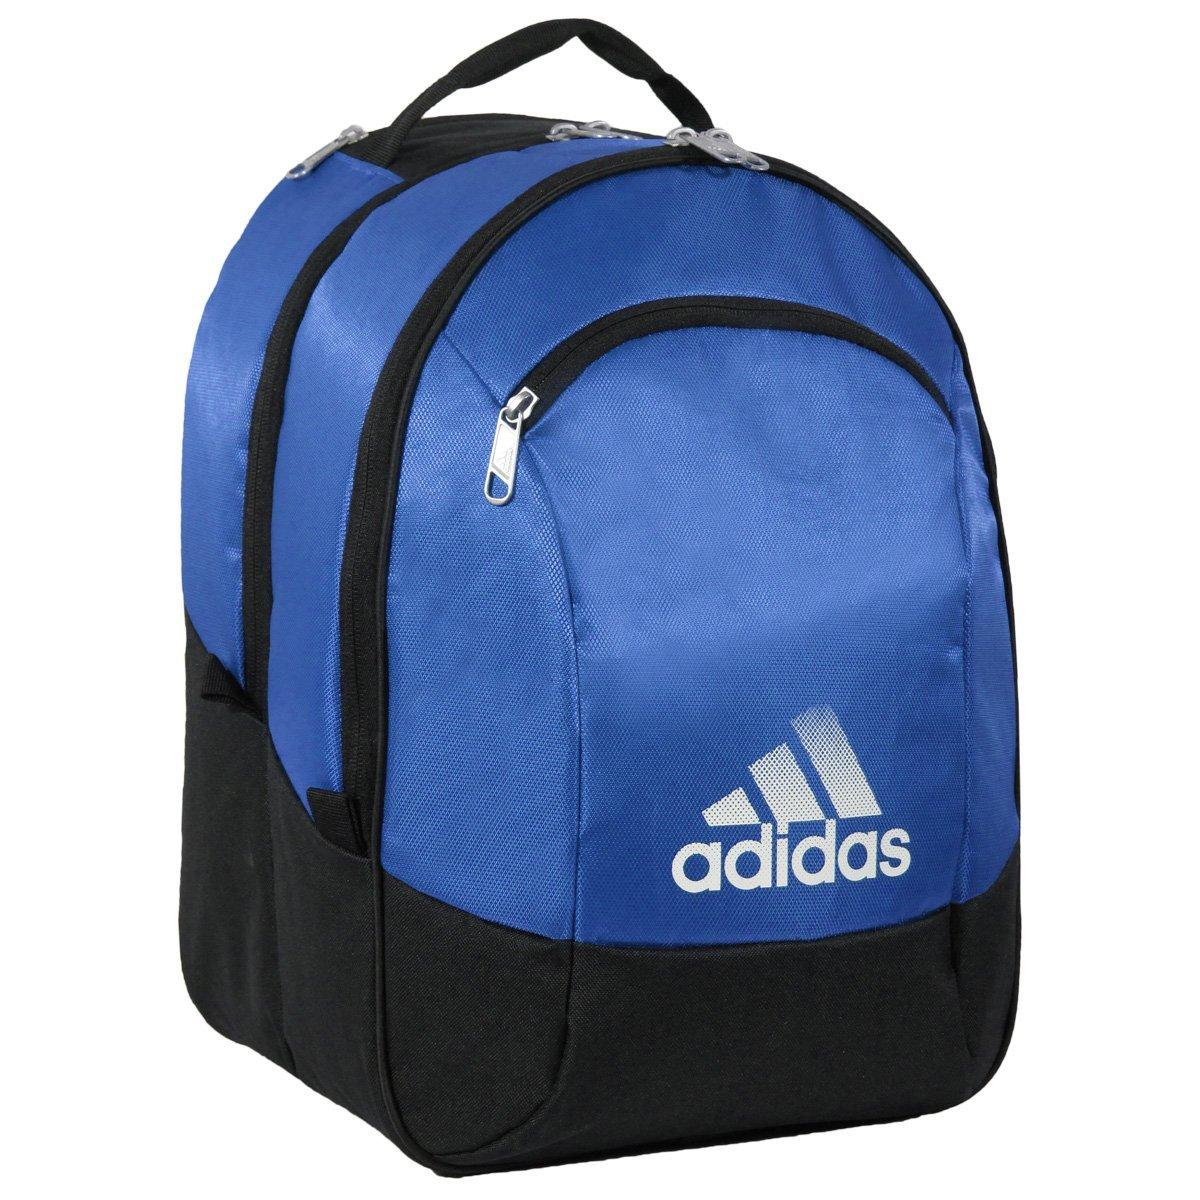 adidas Striker Team Backpack